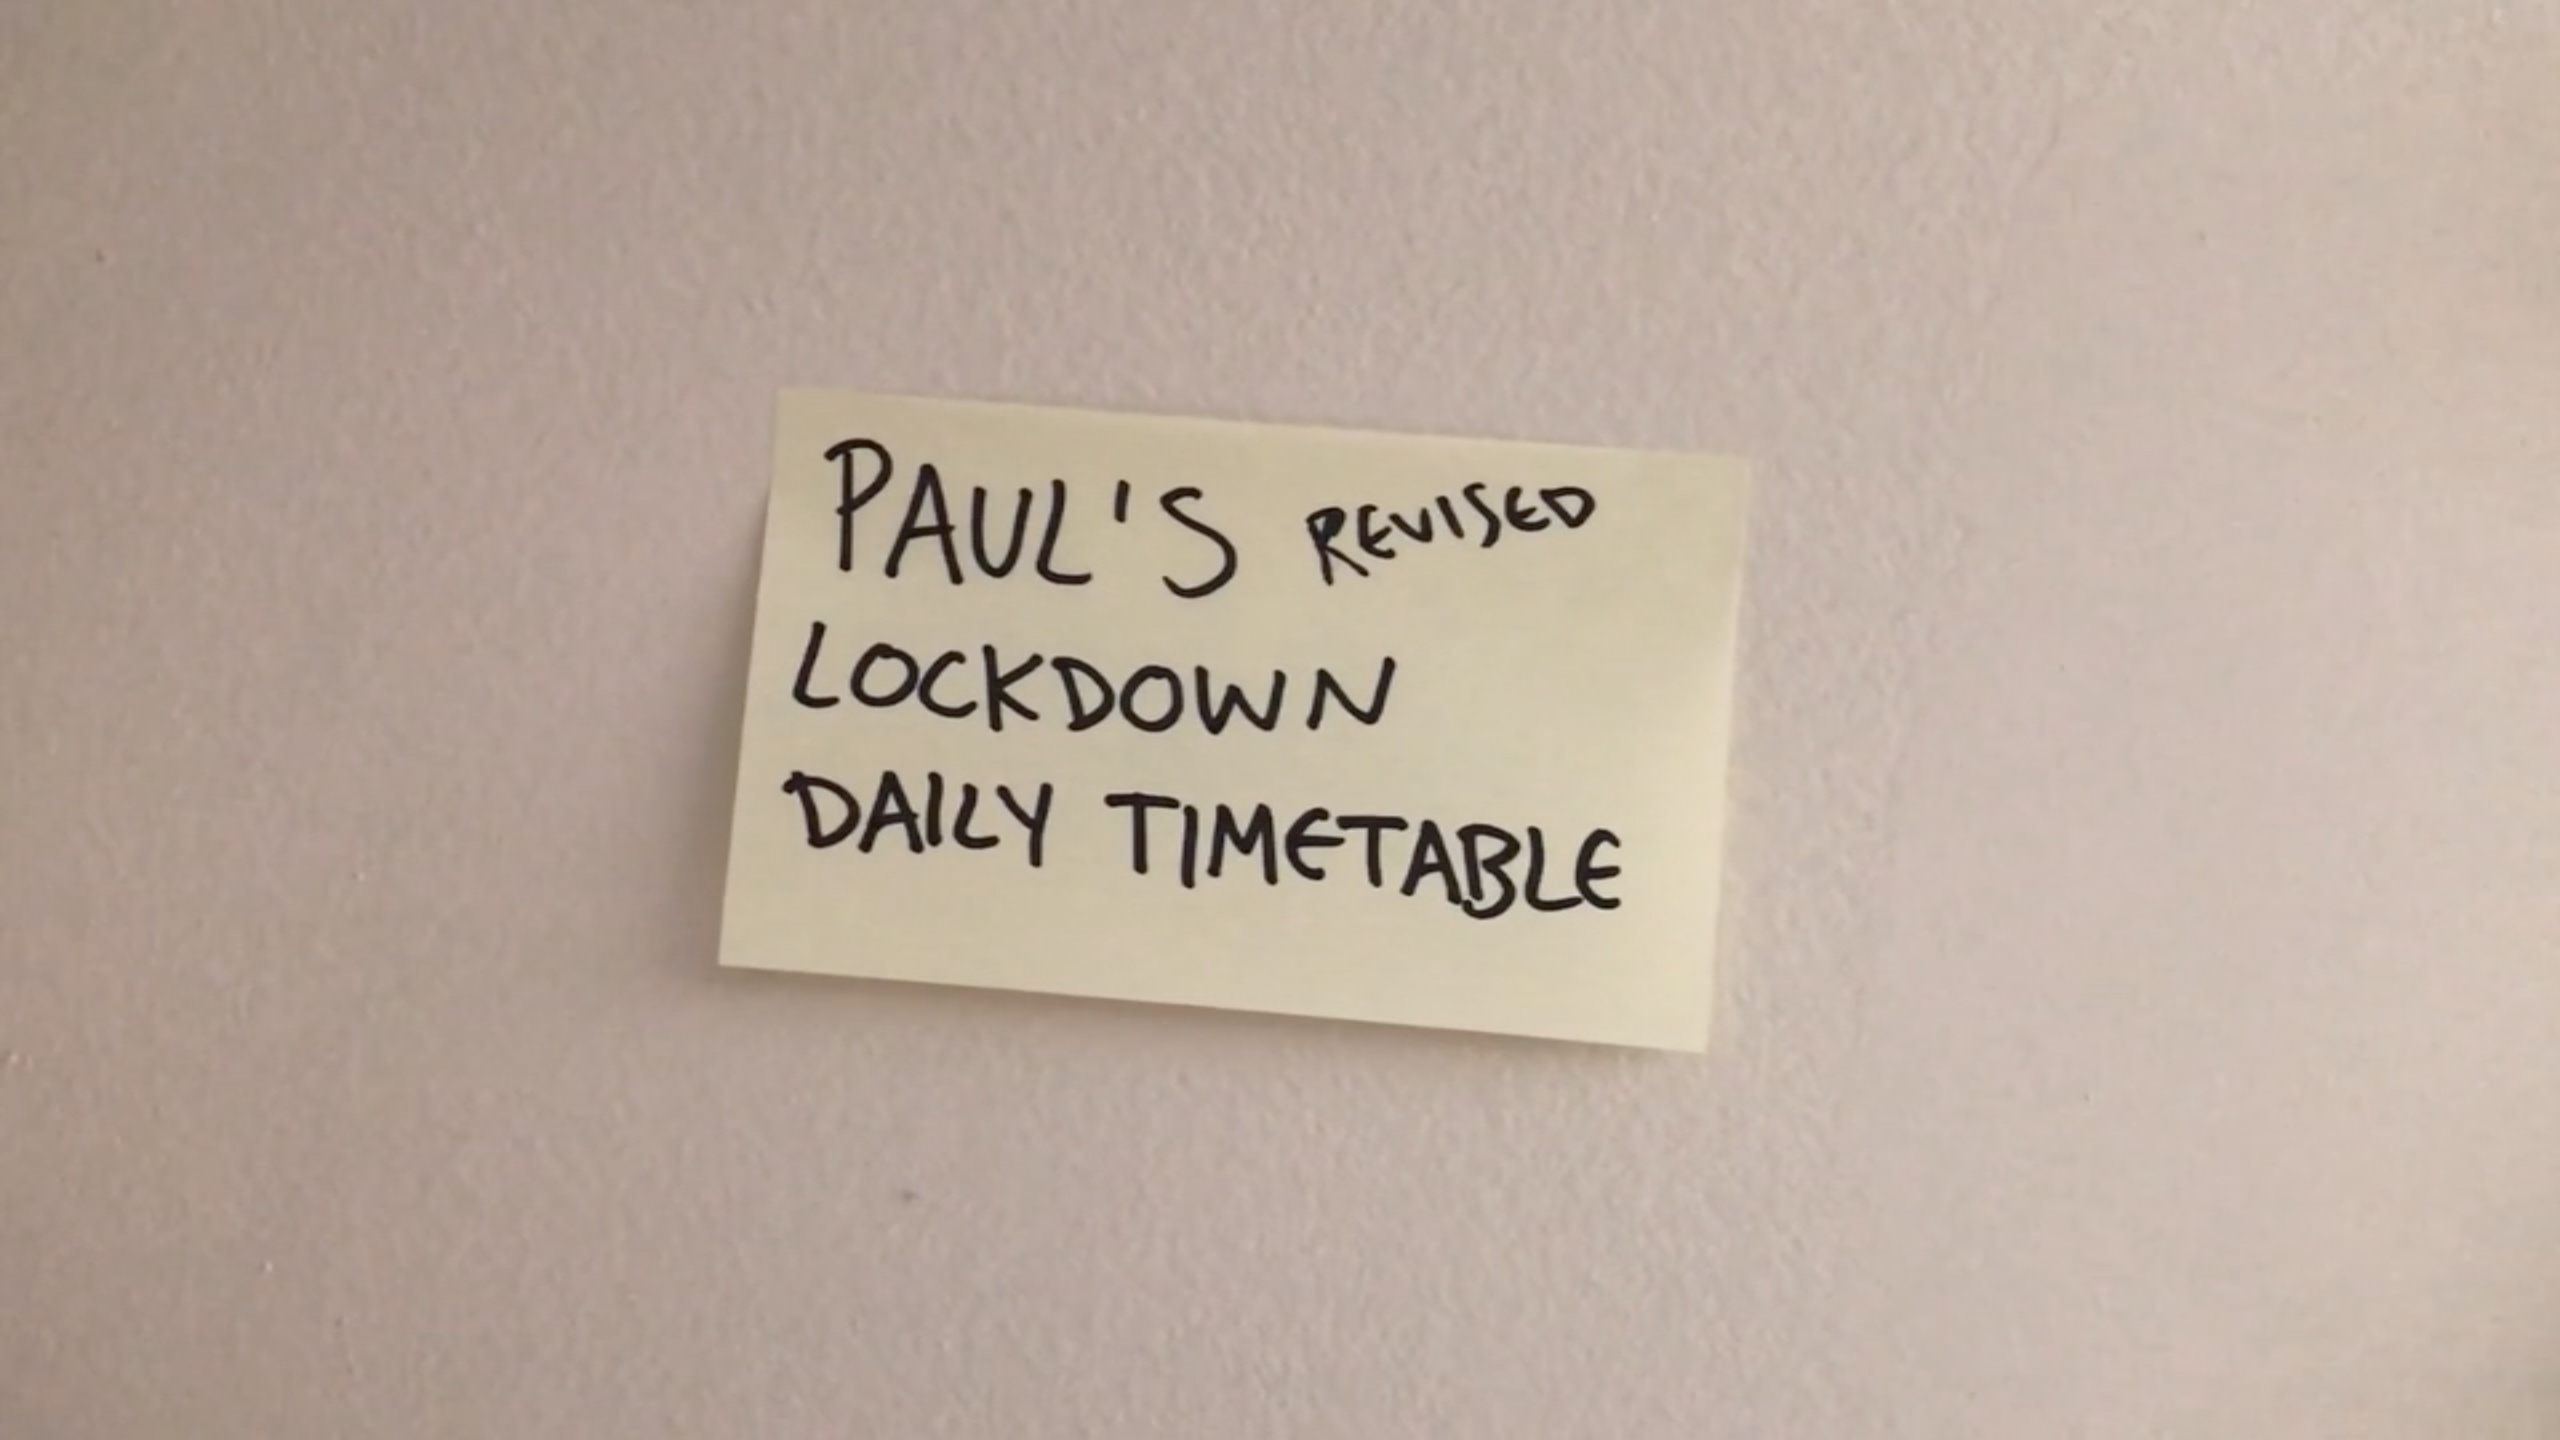 PaulLockdown Daily Timetable